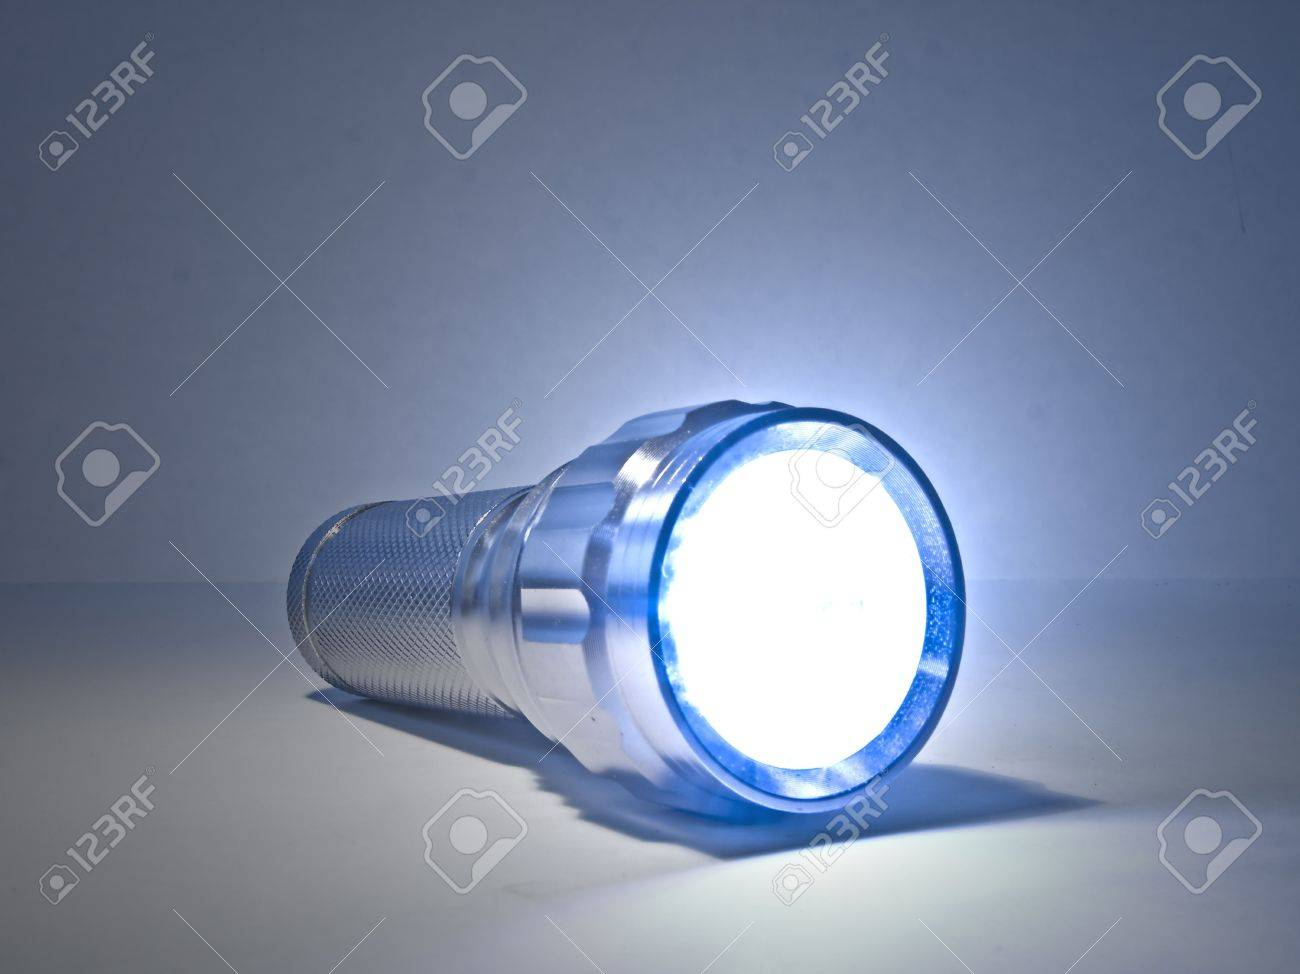 Concept image of a shining torch against a plain background Stock Photo - 2470492